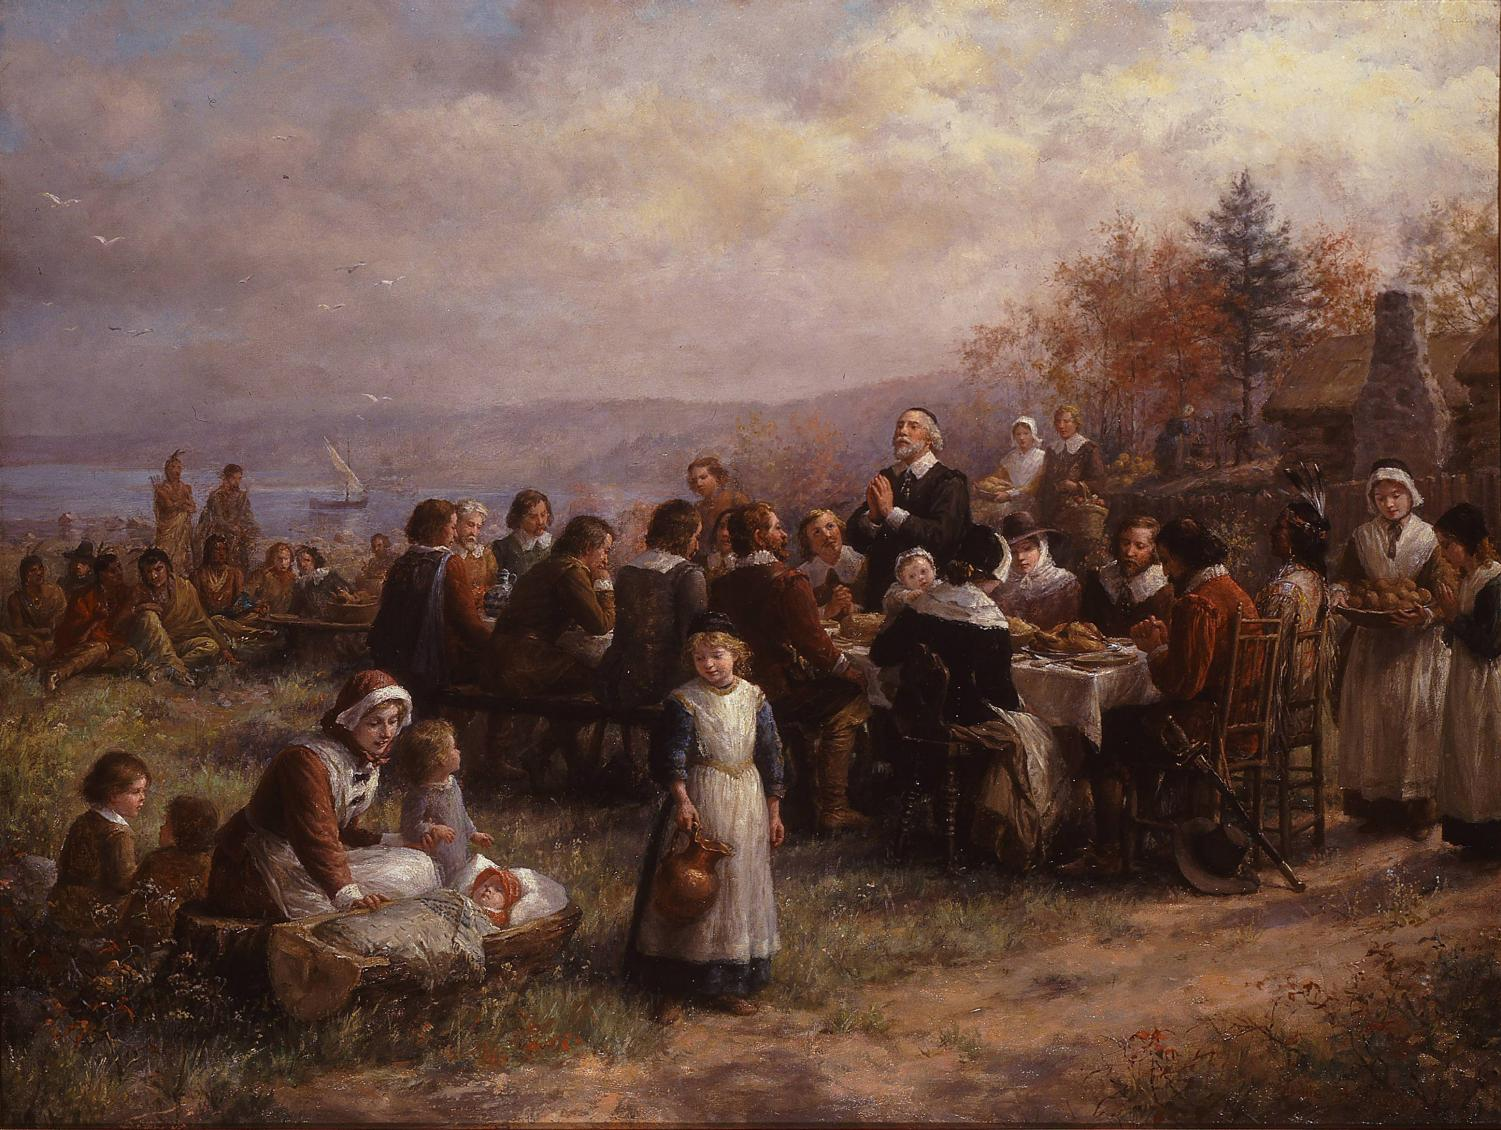 Native Americans and Pilgrims share a feast at a depiction of the first Thanksgiving. The first Thanksgiving was held in October 1621.